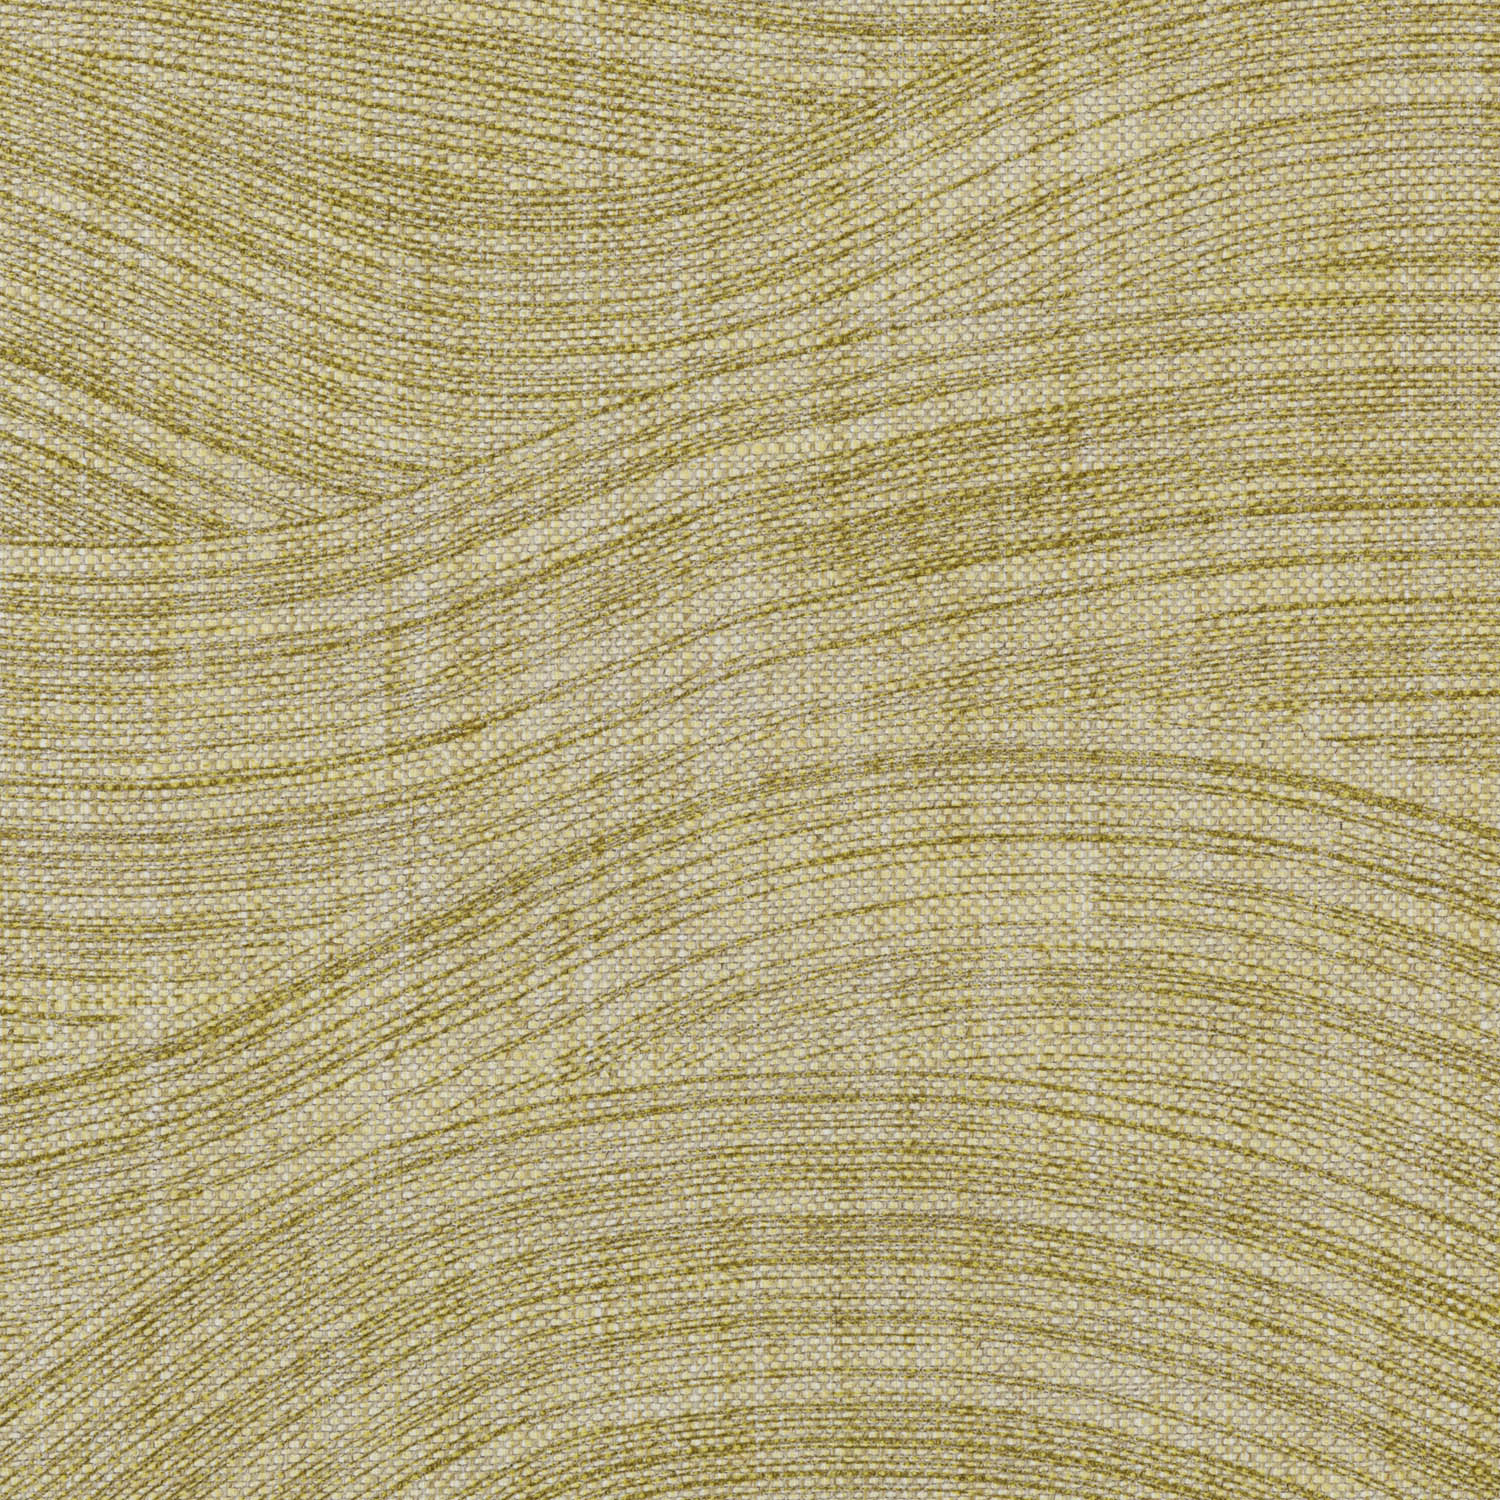 wave-003-yellow-wave-linen-1